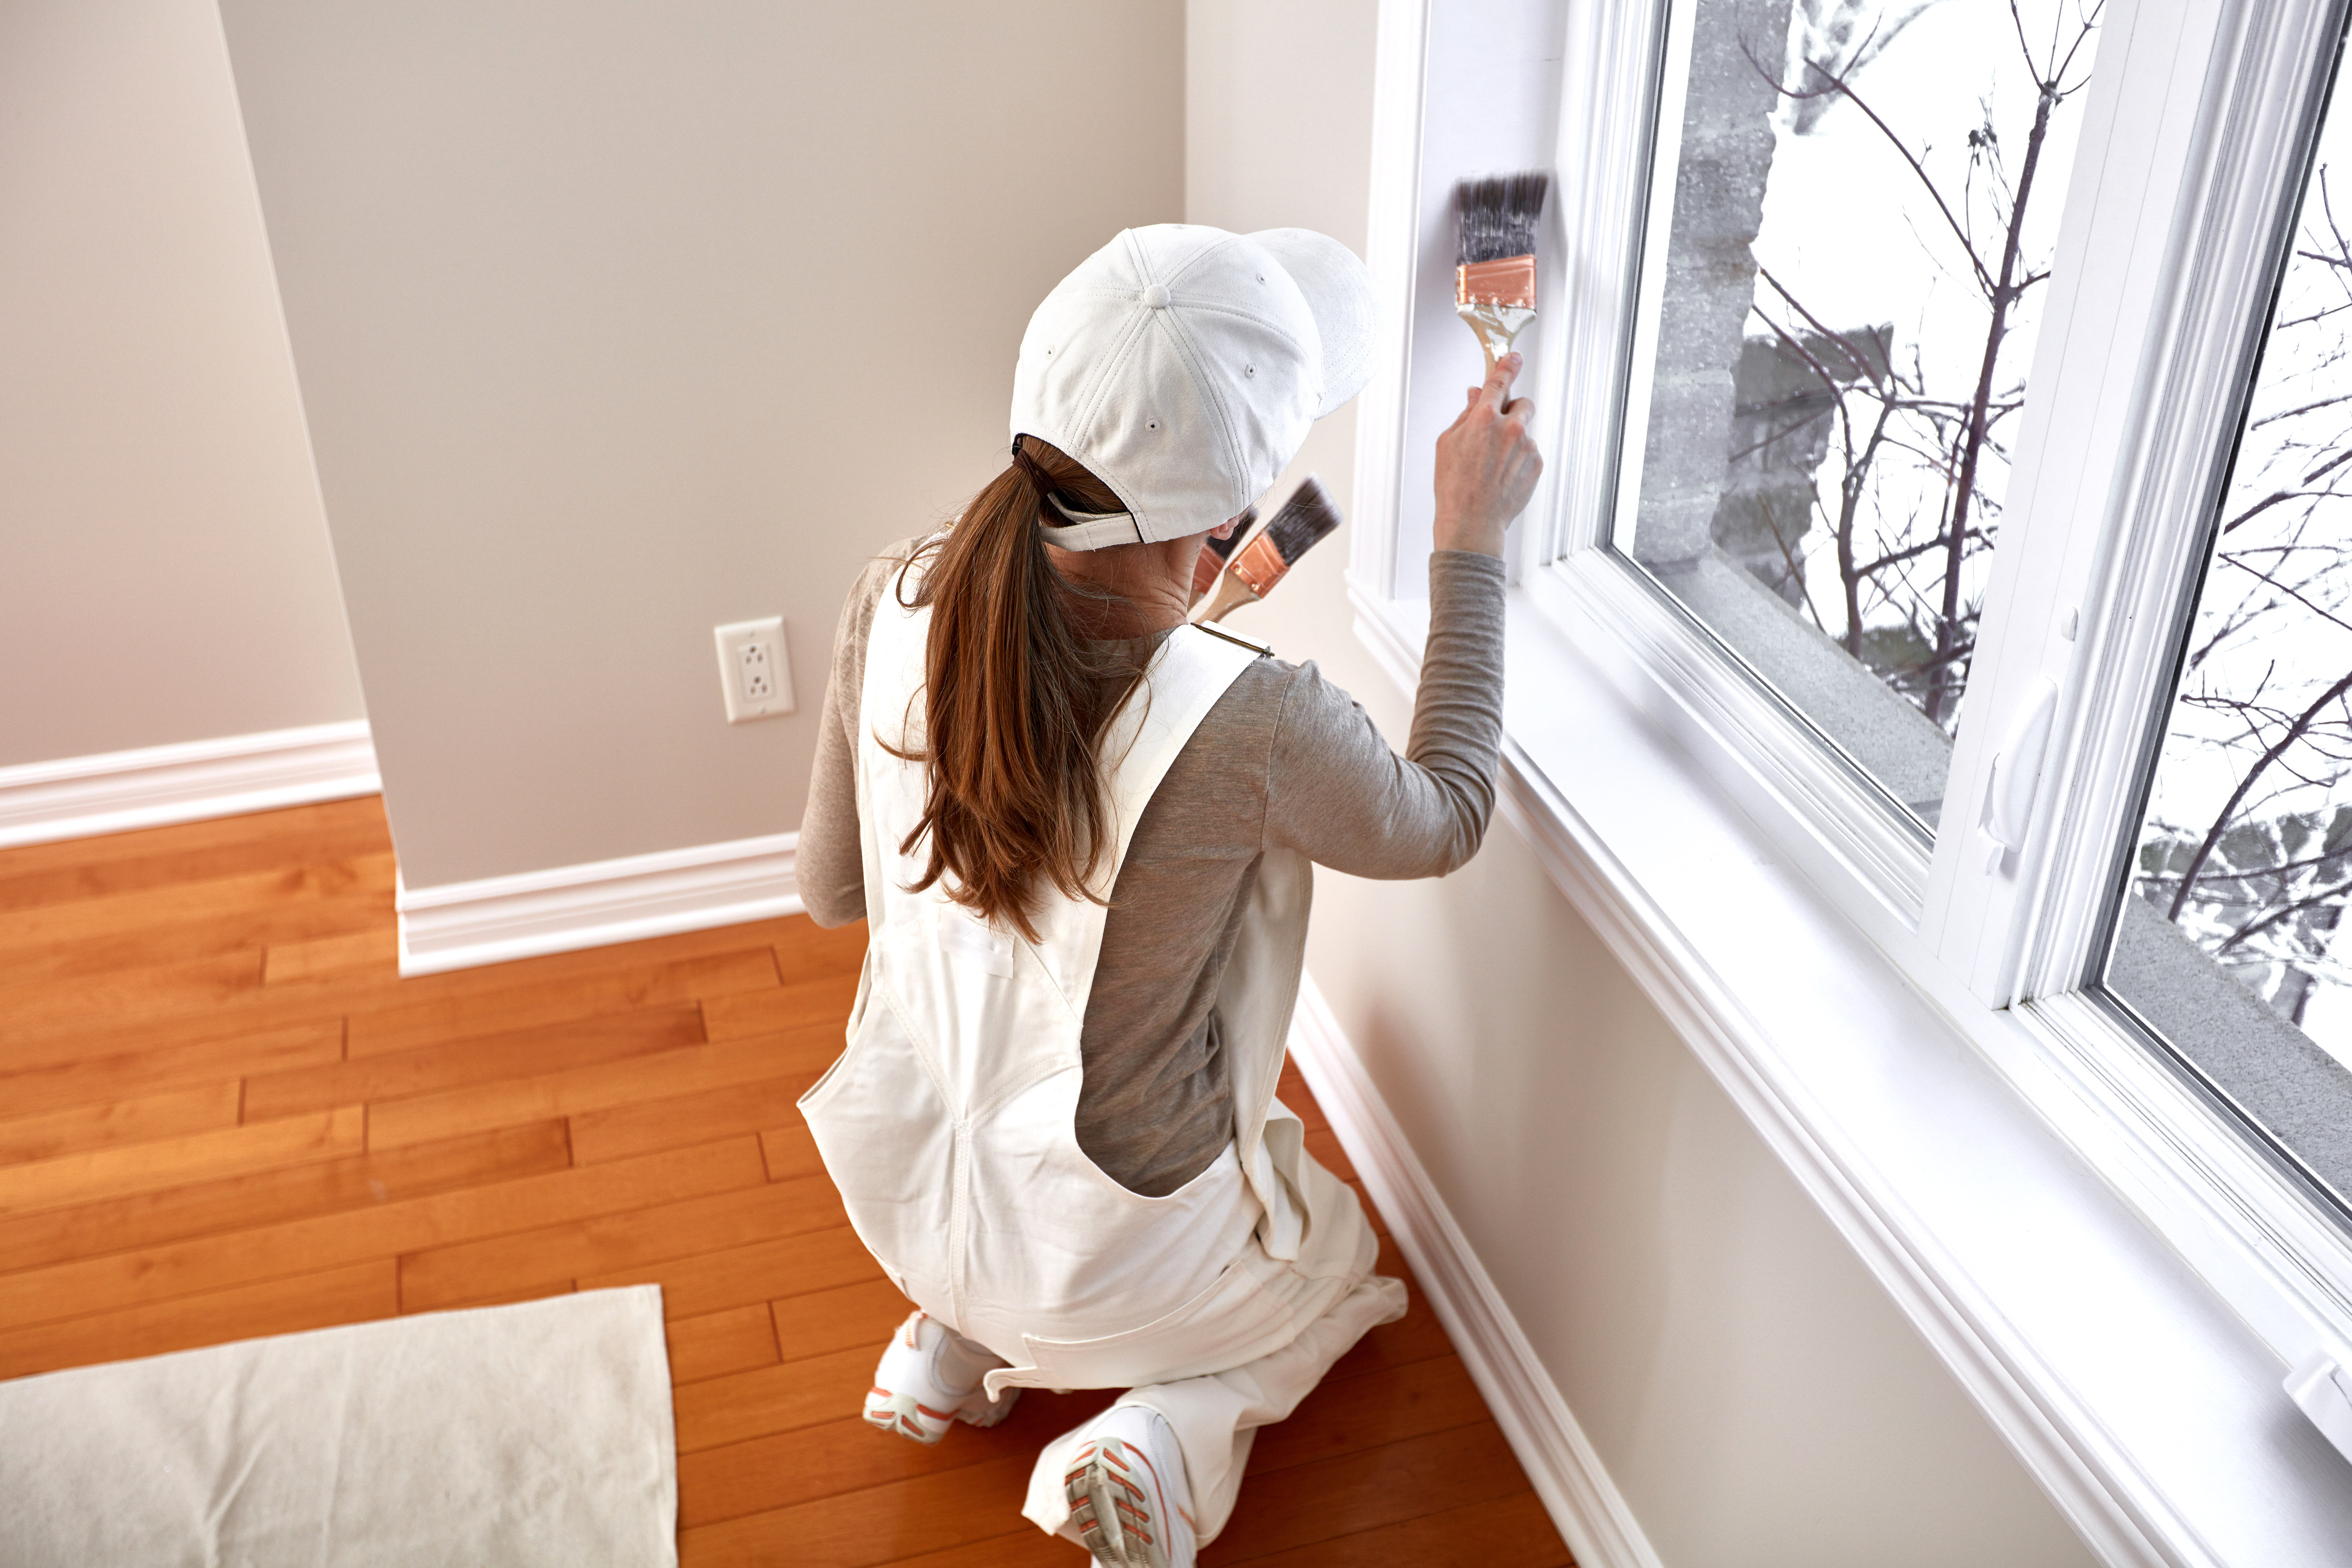 woman painting home interior trim around window frame